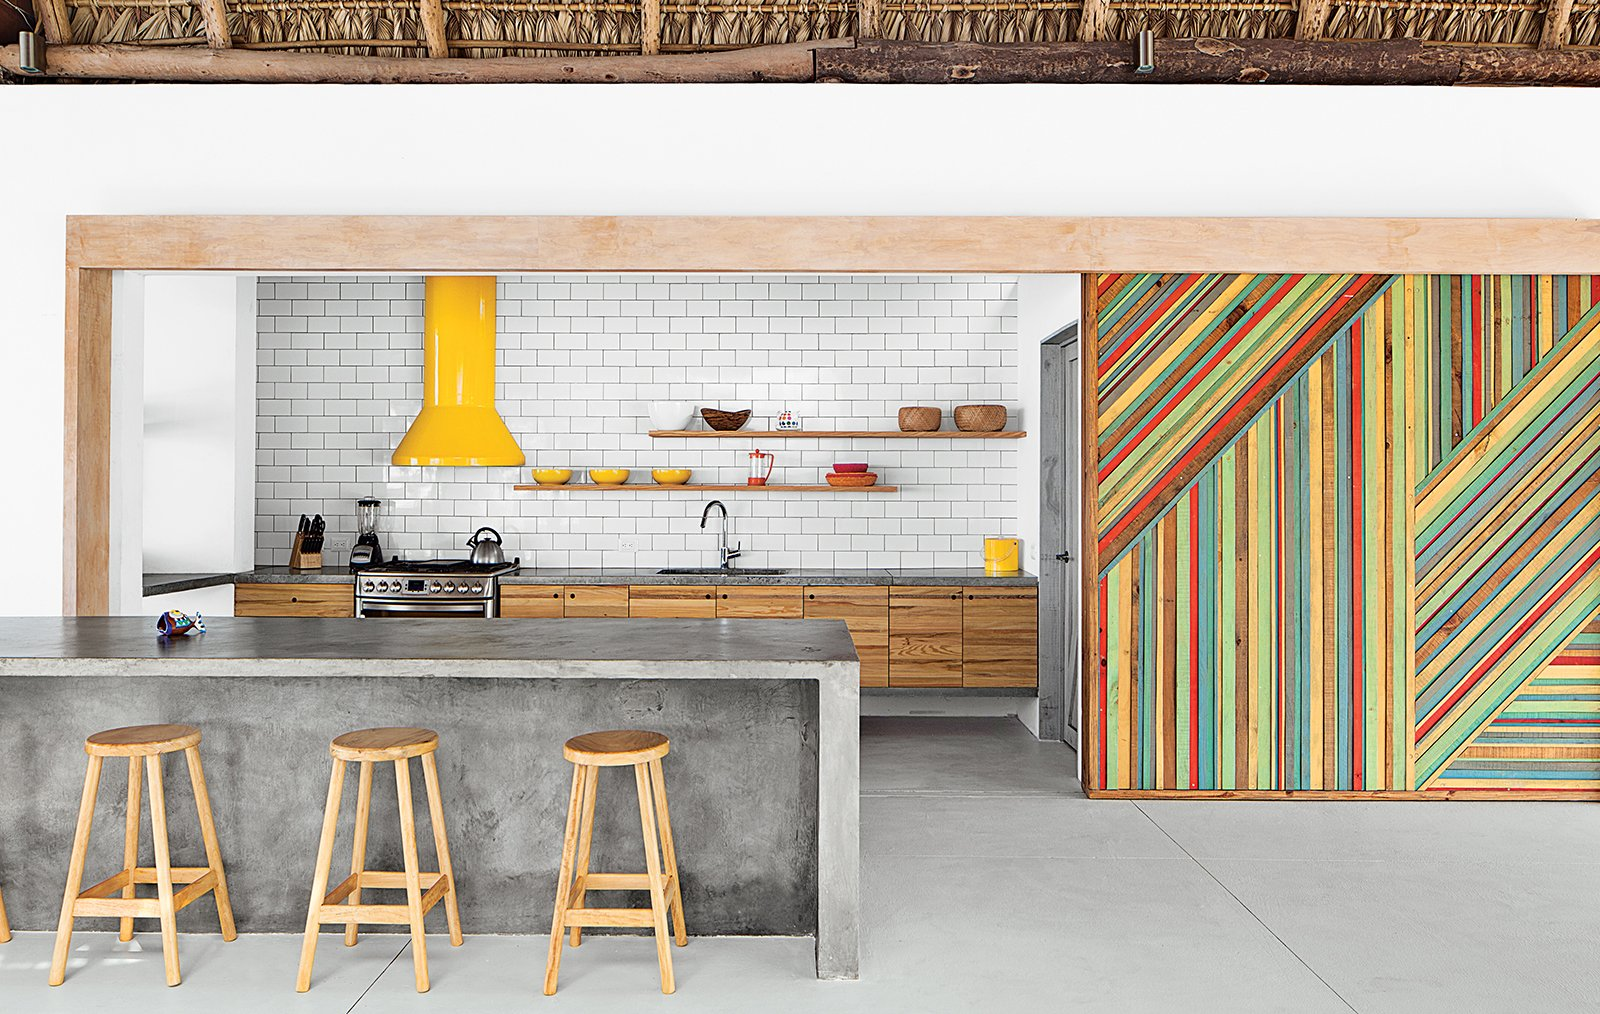 Kitchen, Concrete Counter, Wood Cabinet, Range Hood, Range, Undermount Sink, Concrete Floor, and Subway Tile Backsplashe By eliminating walls and incorporating a series of interior gardens, architect José Roberto Paredes creates an eclectic and inspired El Salvador beach house. In the kitchen, rough-hewn materials like a eucalyptus-log-and-thatch roof offset the monolithic concrete island and glossy subway tile backsplash. Claudia & Harry Washington built the vivid wooden sliding walls, which are inspired by the palm leaves that change color and create diagonal patterns in trees near the house. The bar stools were a street market discovery.  Dream Kitchens to Inspire Your Renovation by Diana Budds